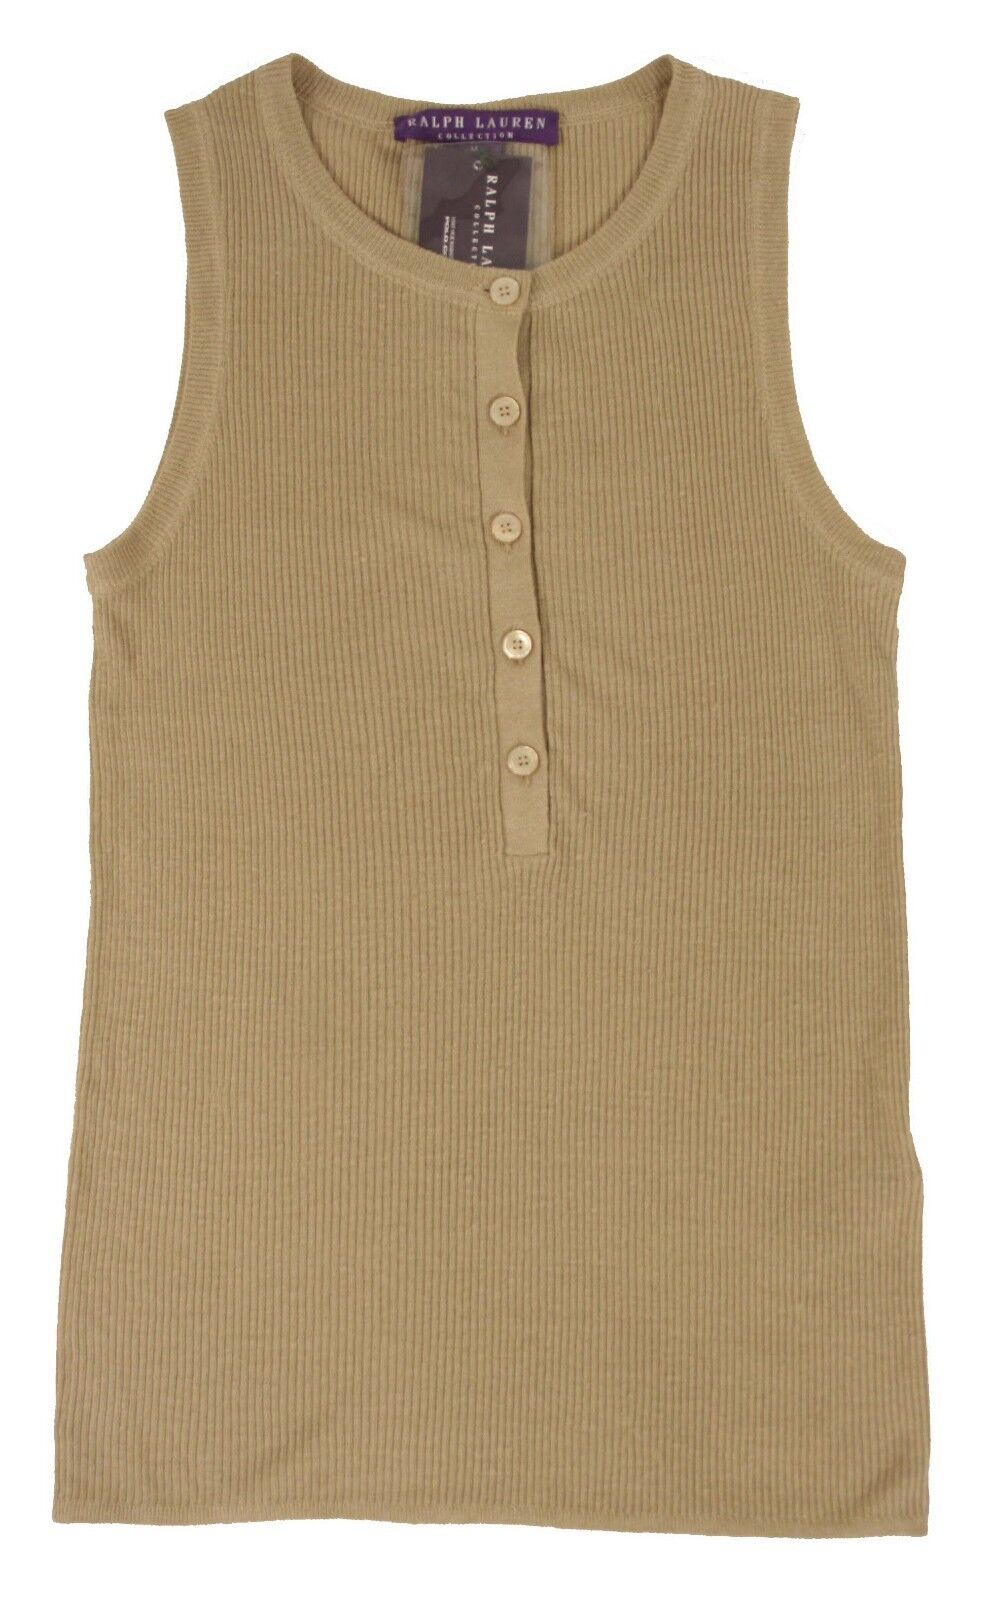 Ralph Lauren lila Label Linen Tank Top Shirt New